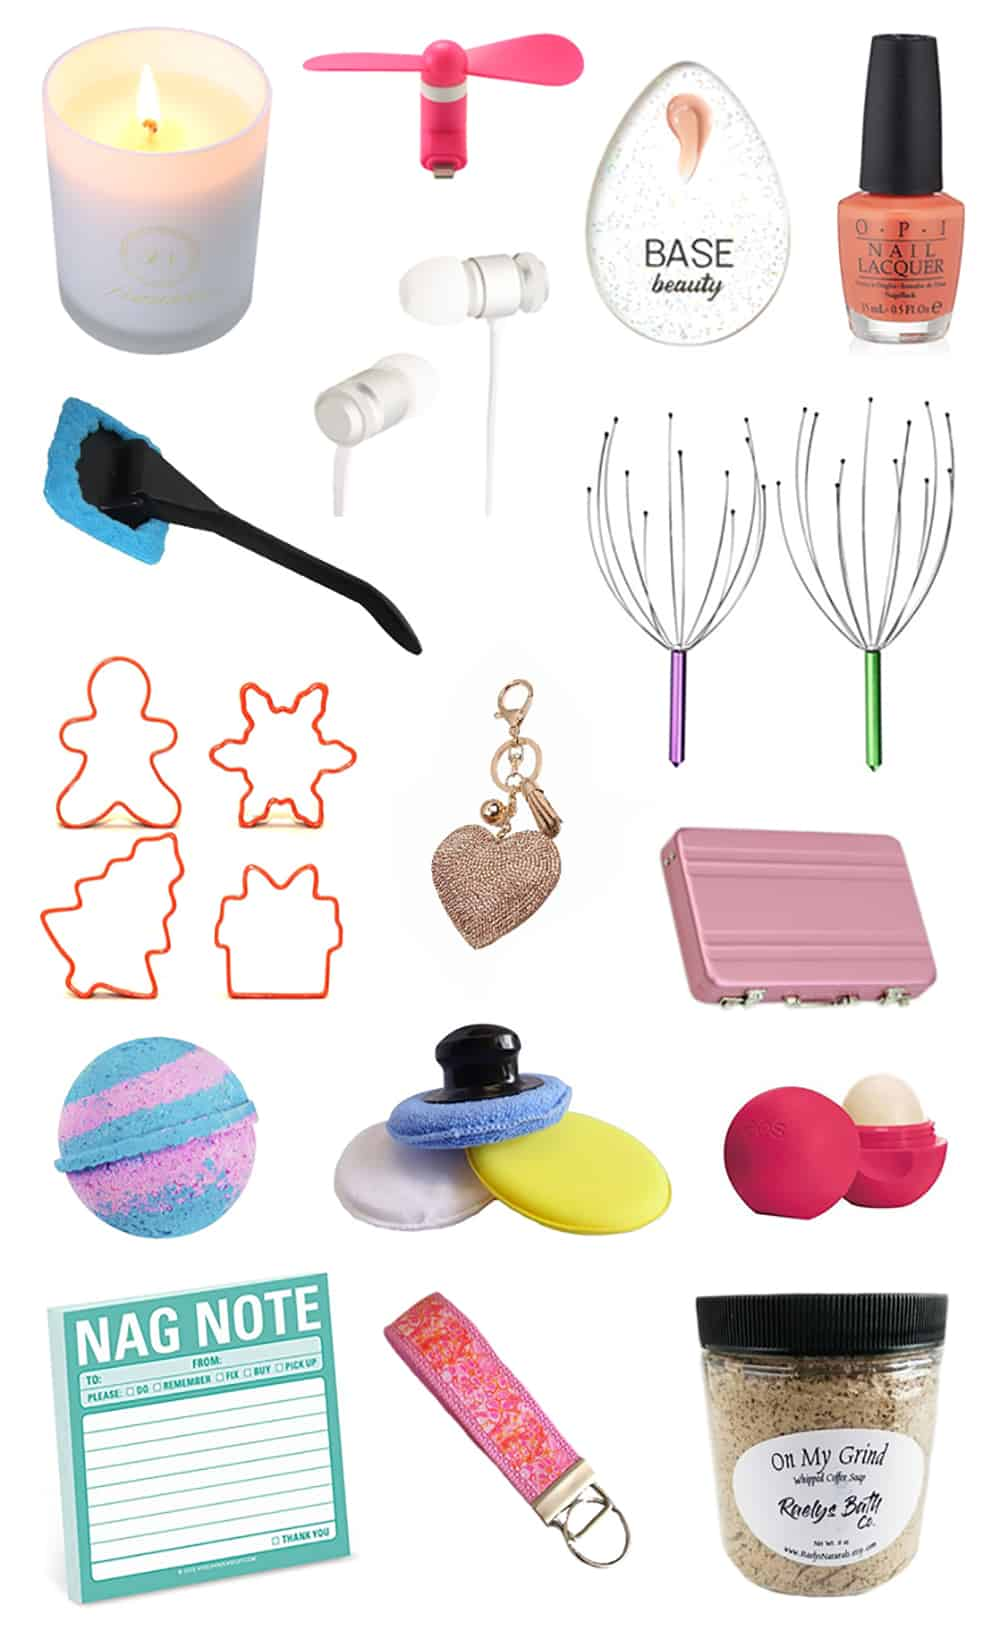 Stocking Stuffers for $5 and Under